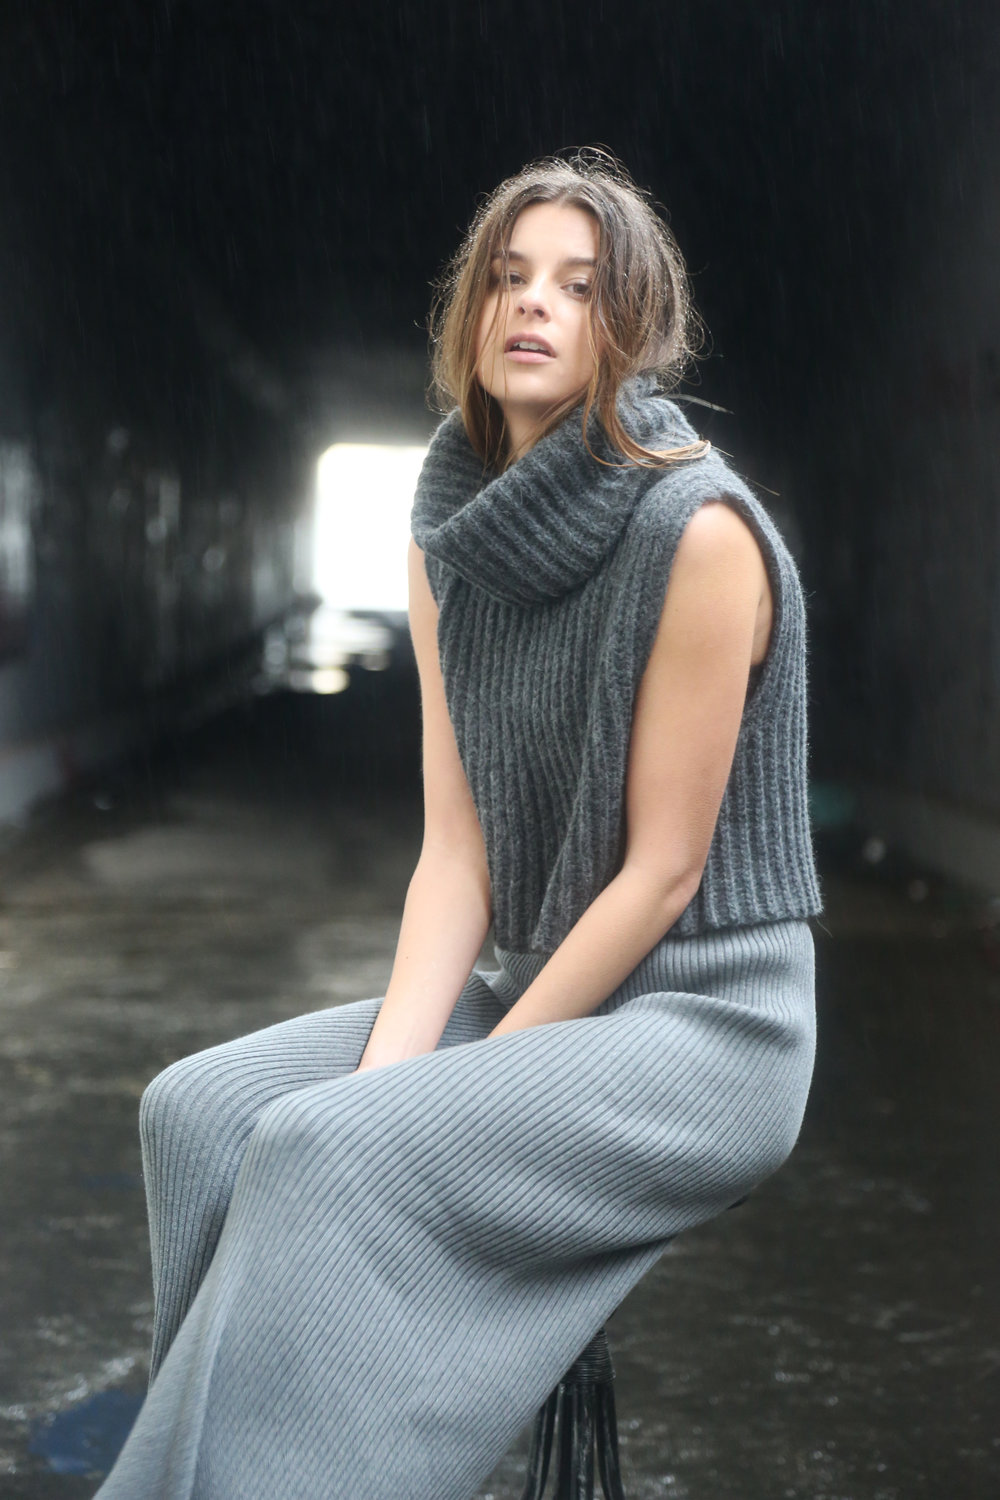 Zoe Sleeveless Turtleneck in Heather Grey, Whit Pant in Heather Grey